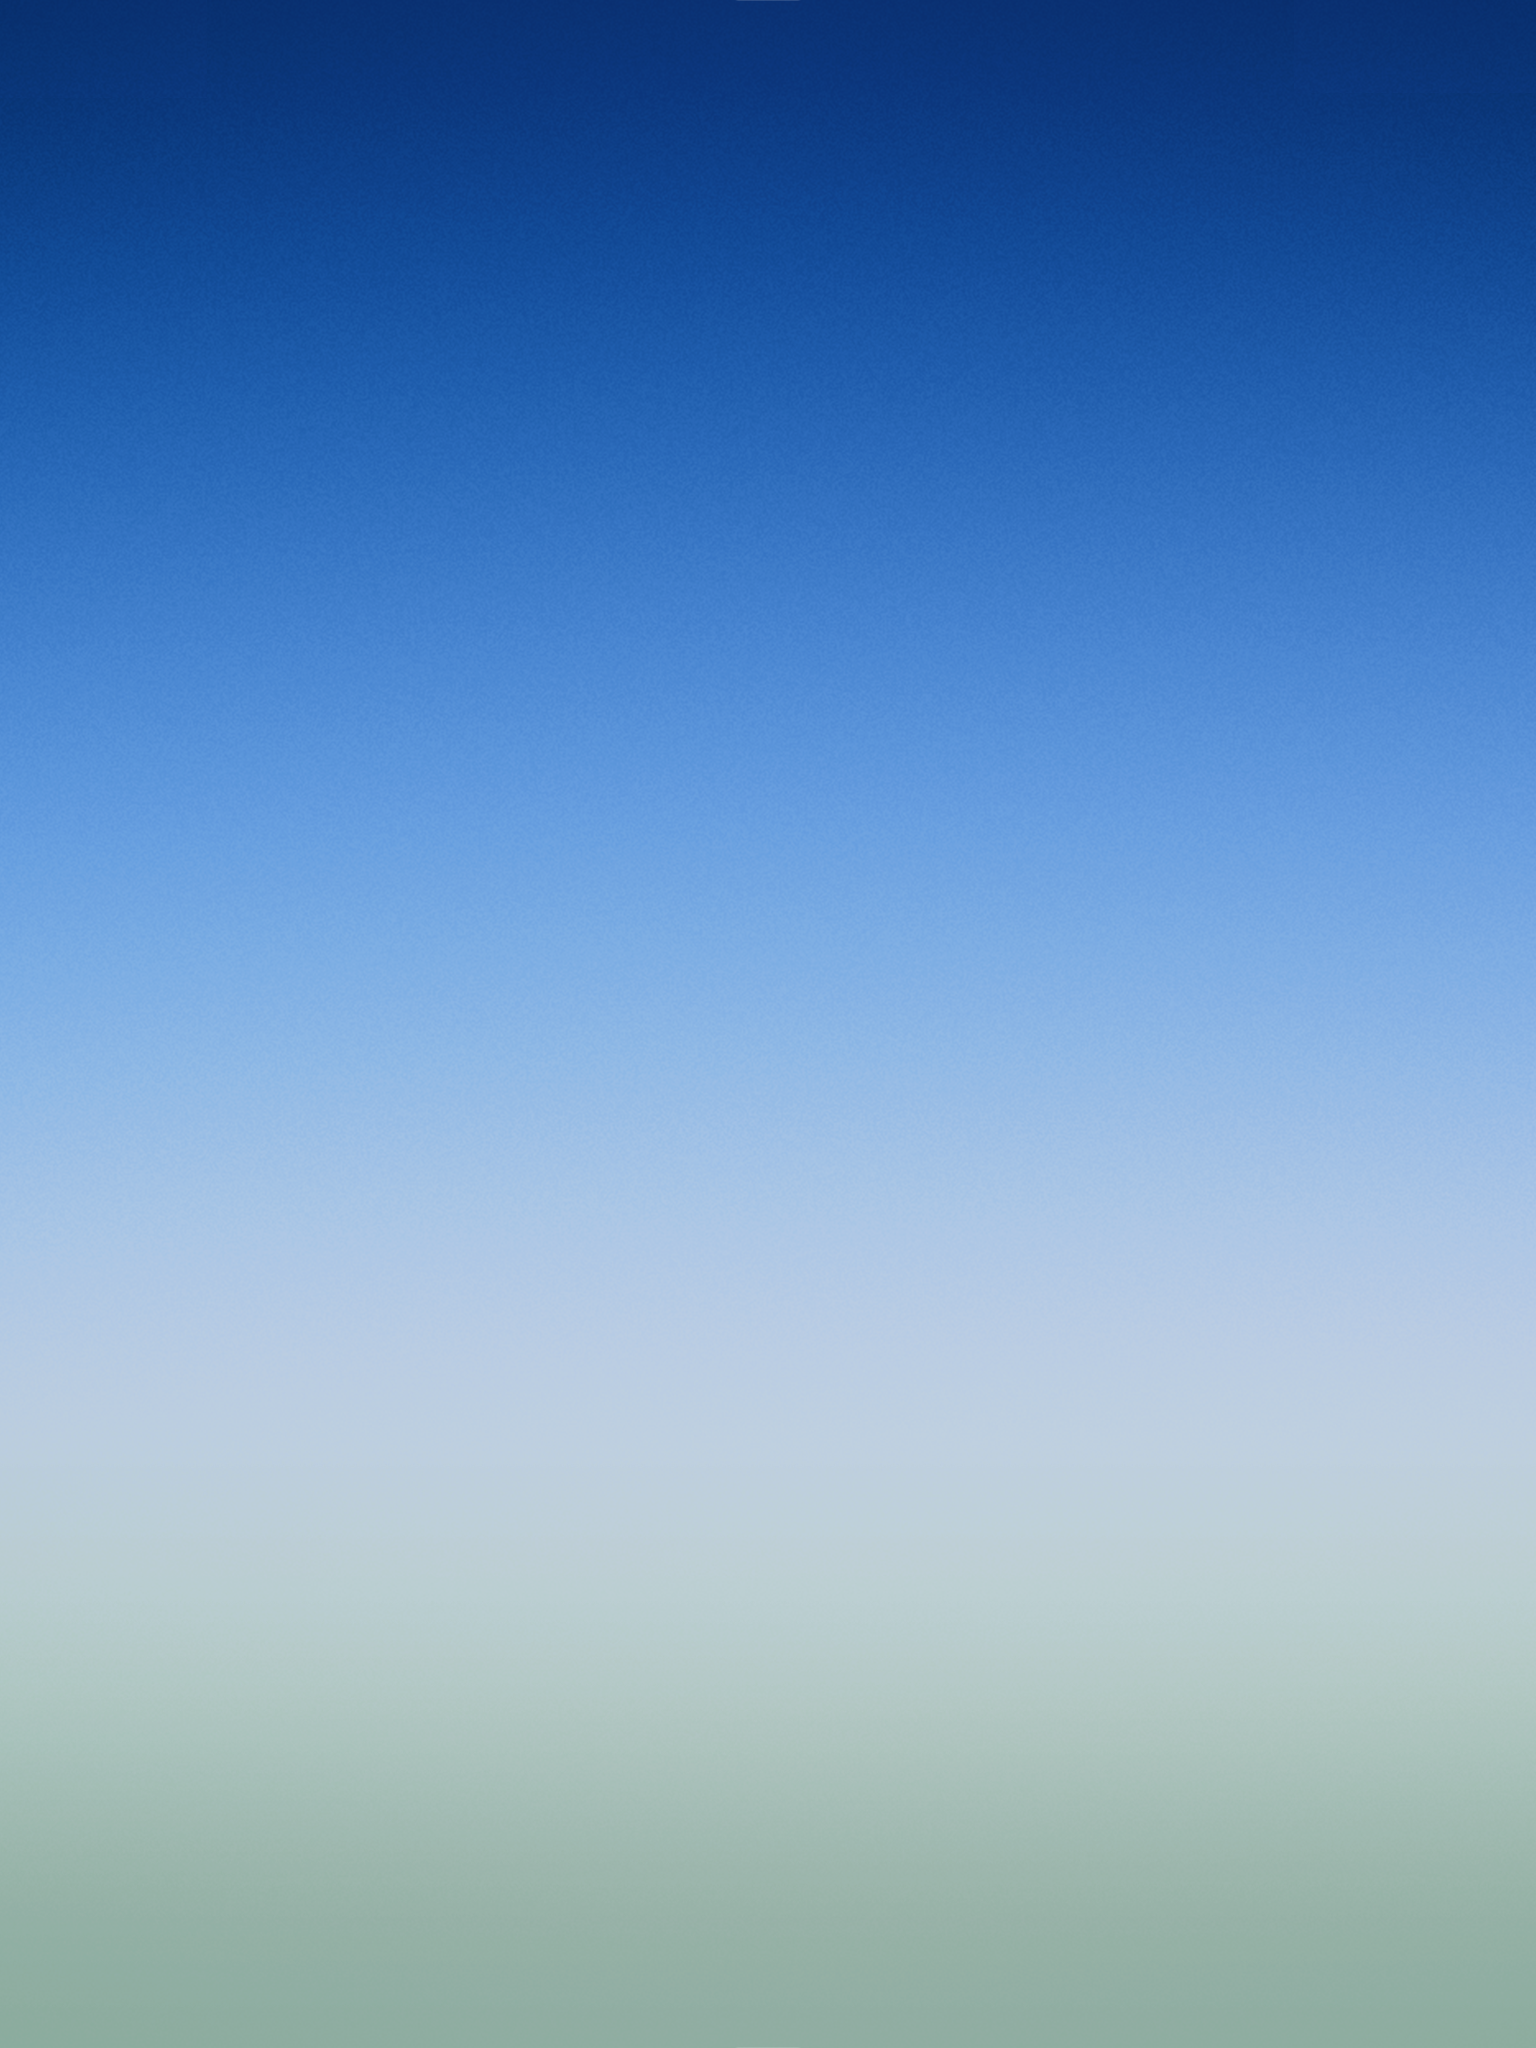 Download iOS 7 Wallpaper for iPad 1536 2048 resolution 1536x2048